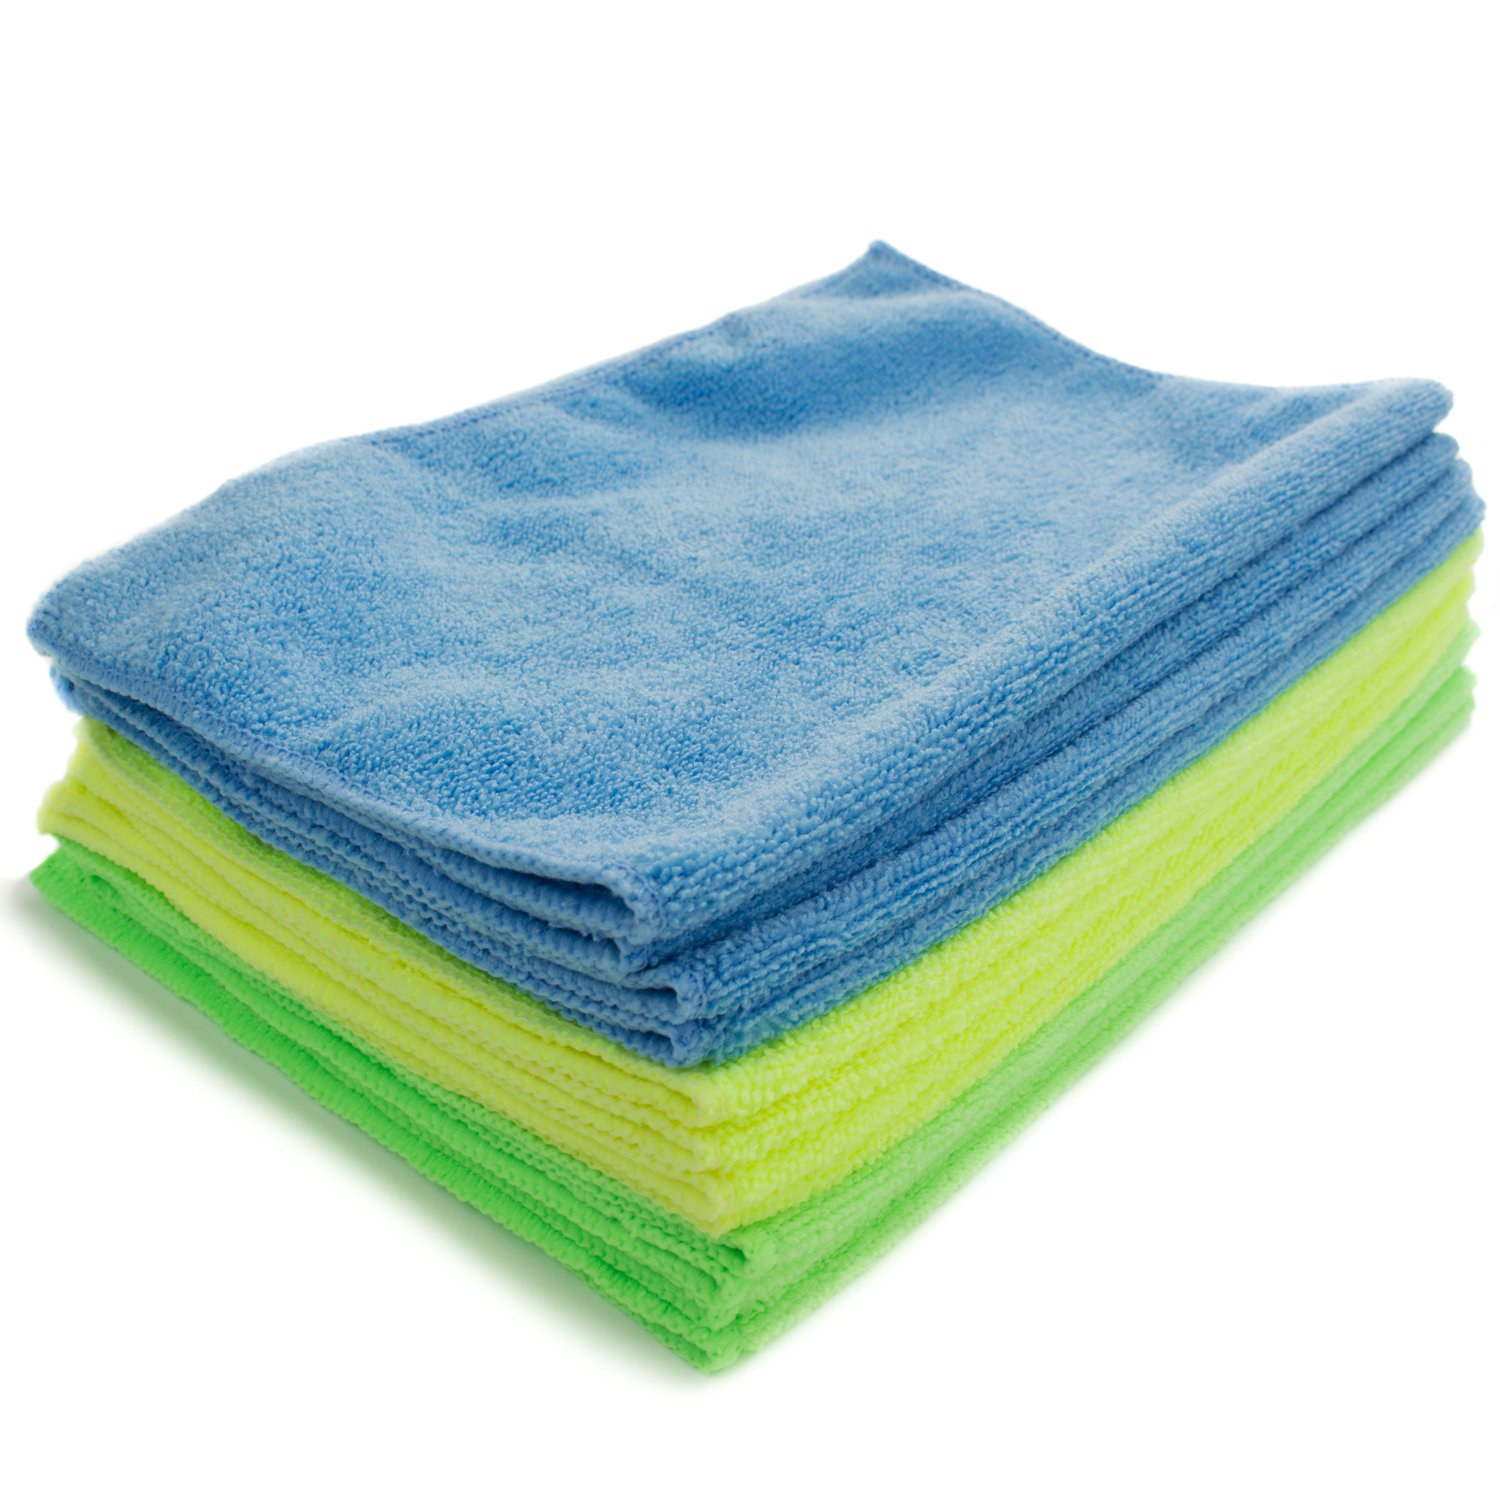 Zwipes 735 Microfiber Towel Cleaning Cloths, 12-Pack